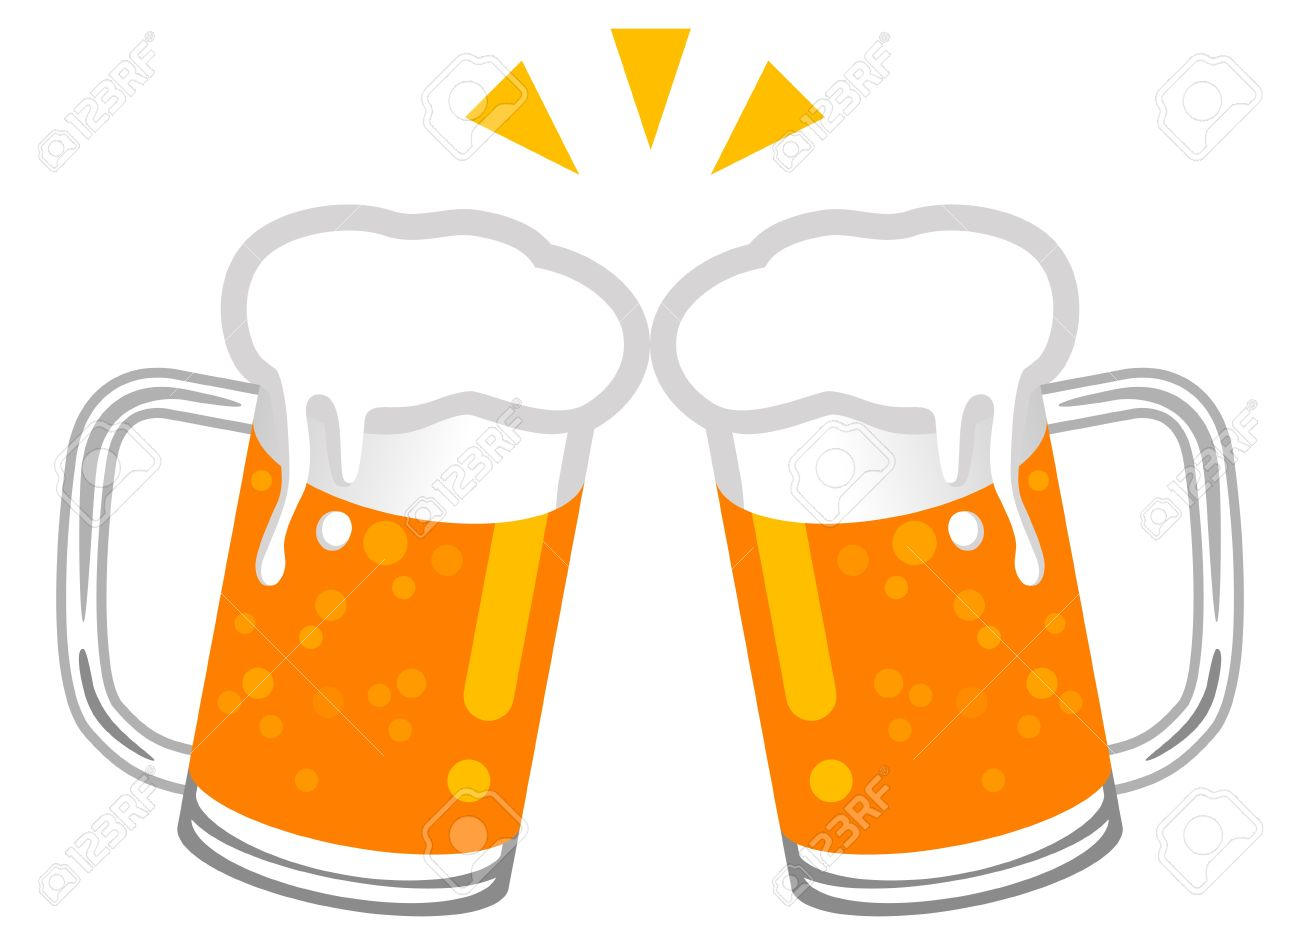 Cheers clipart draft beer, Cheers draft beer Transparent.